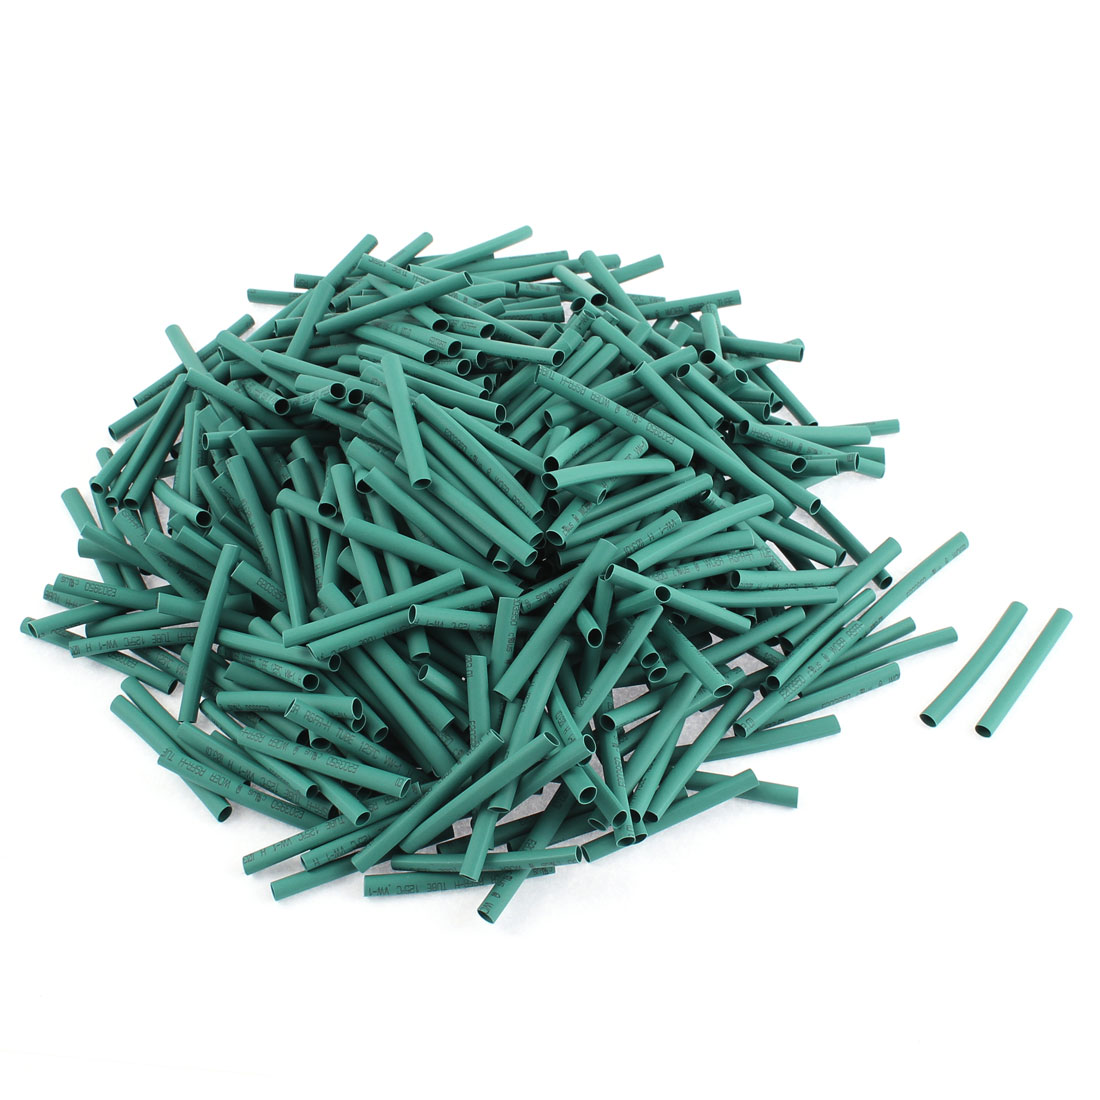 Electrical Connection Cable Sleeve 40mm Length Heat Shrink Tubing Green 500Pcs